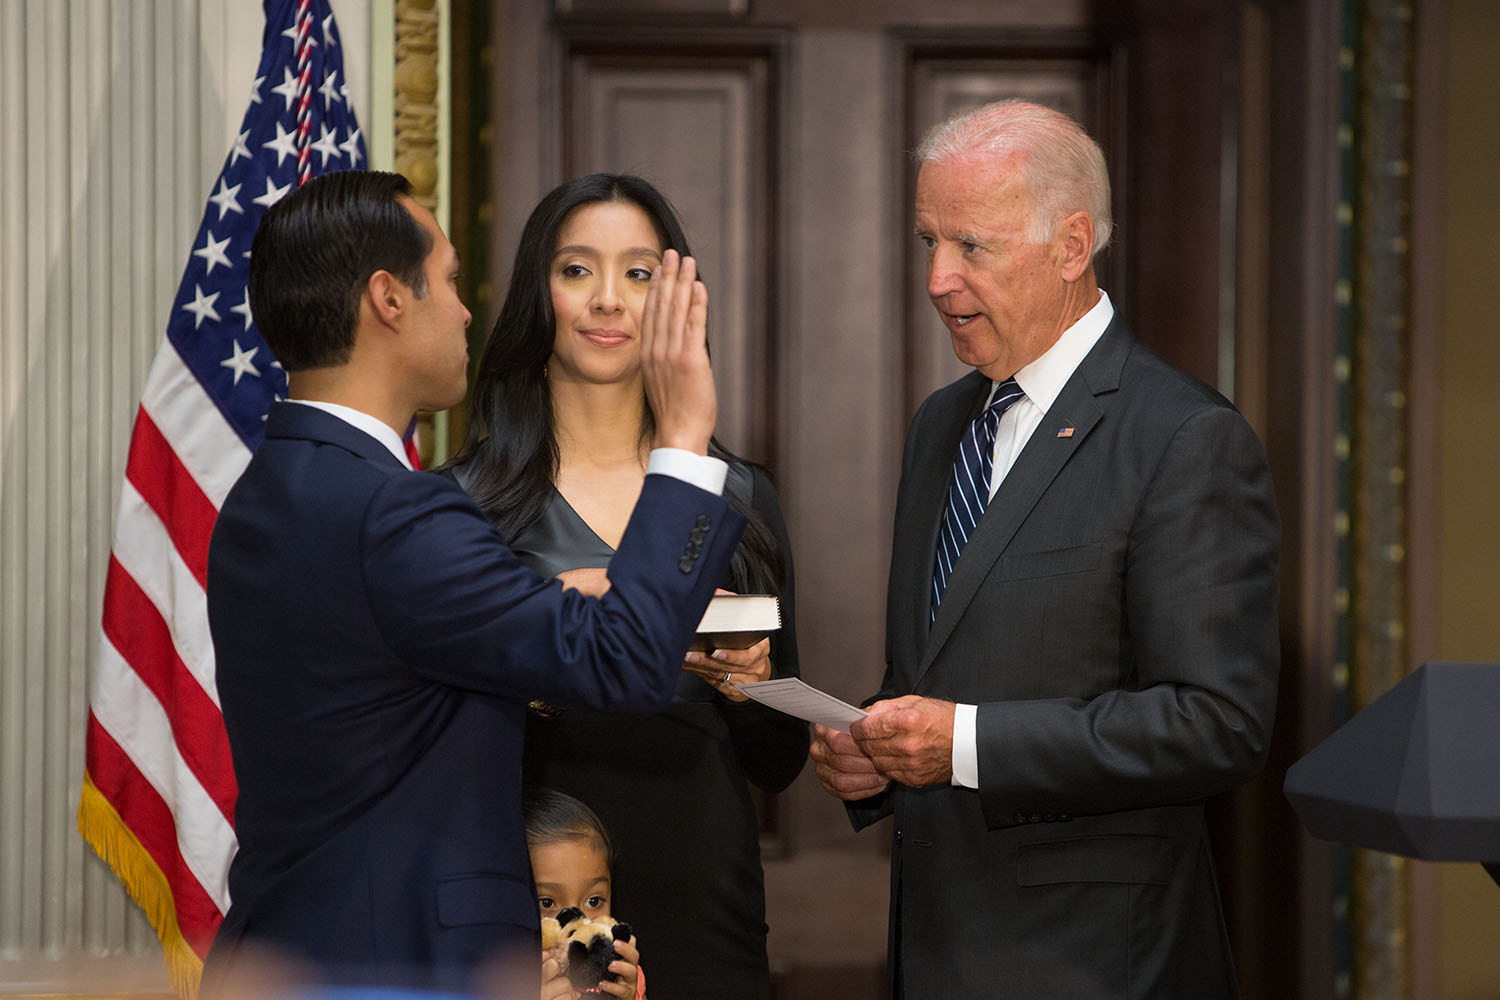 Vice President Joe Biden ceremonially swears in Julian Castro as Secretary of Housing and Urban Development